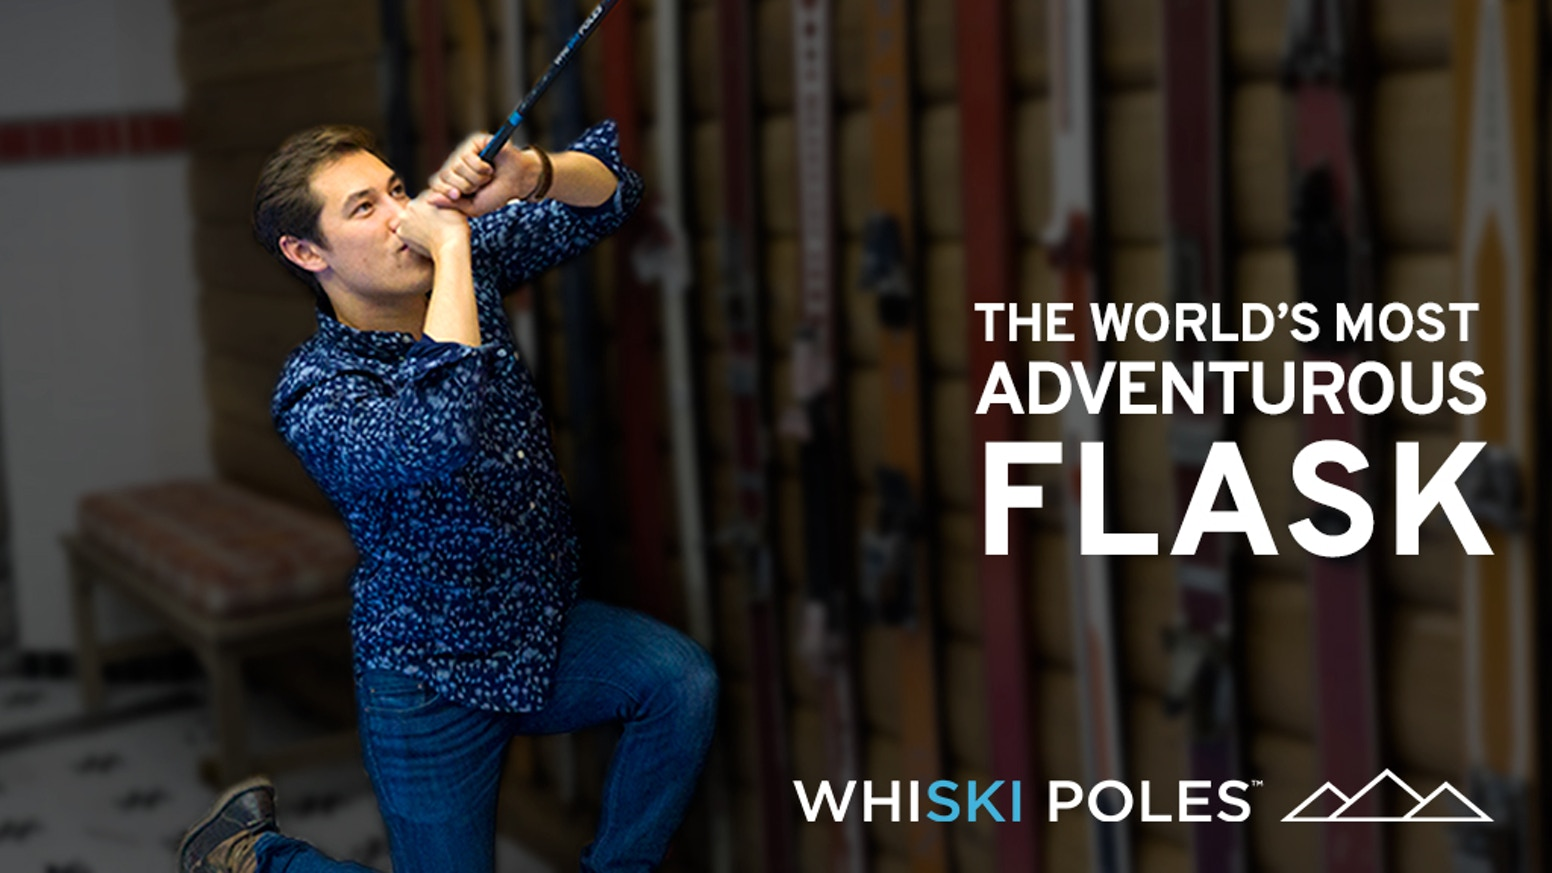 WhiSki Poles = Ski Pole Flasks...High-performance ski poles with an integrated flask.  Enjoy a drink post-ski, or simply skip the slopes and embrace the après ski life!